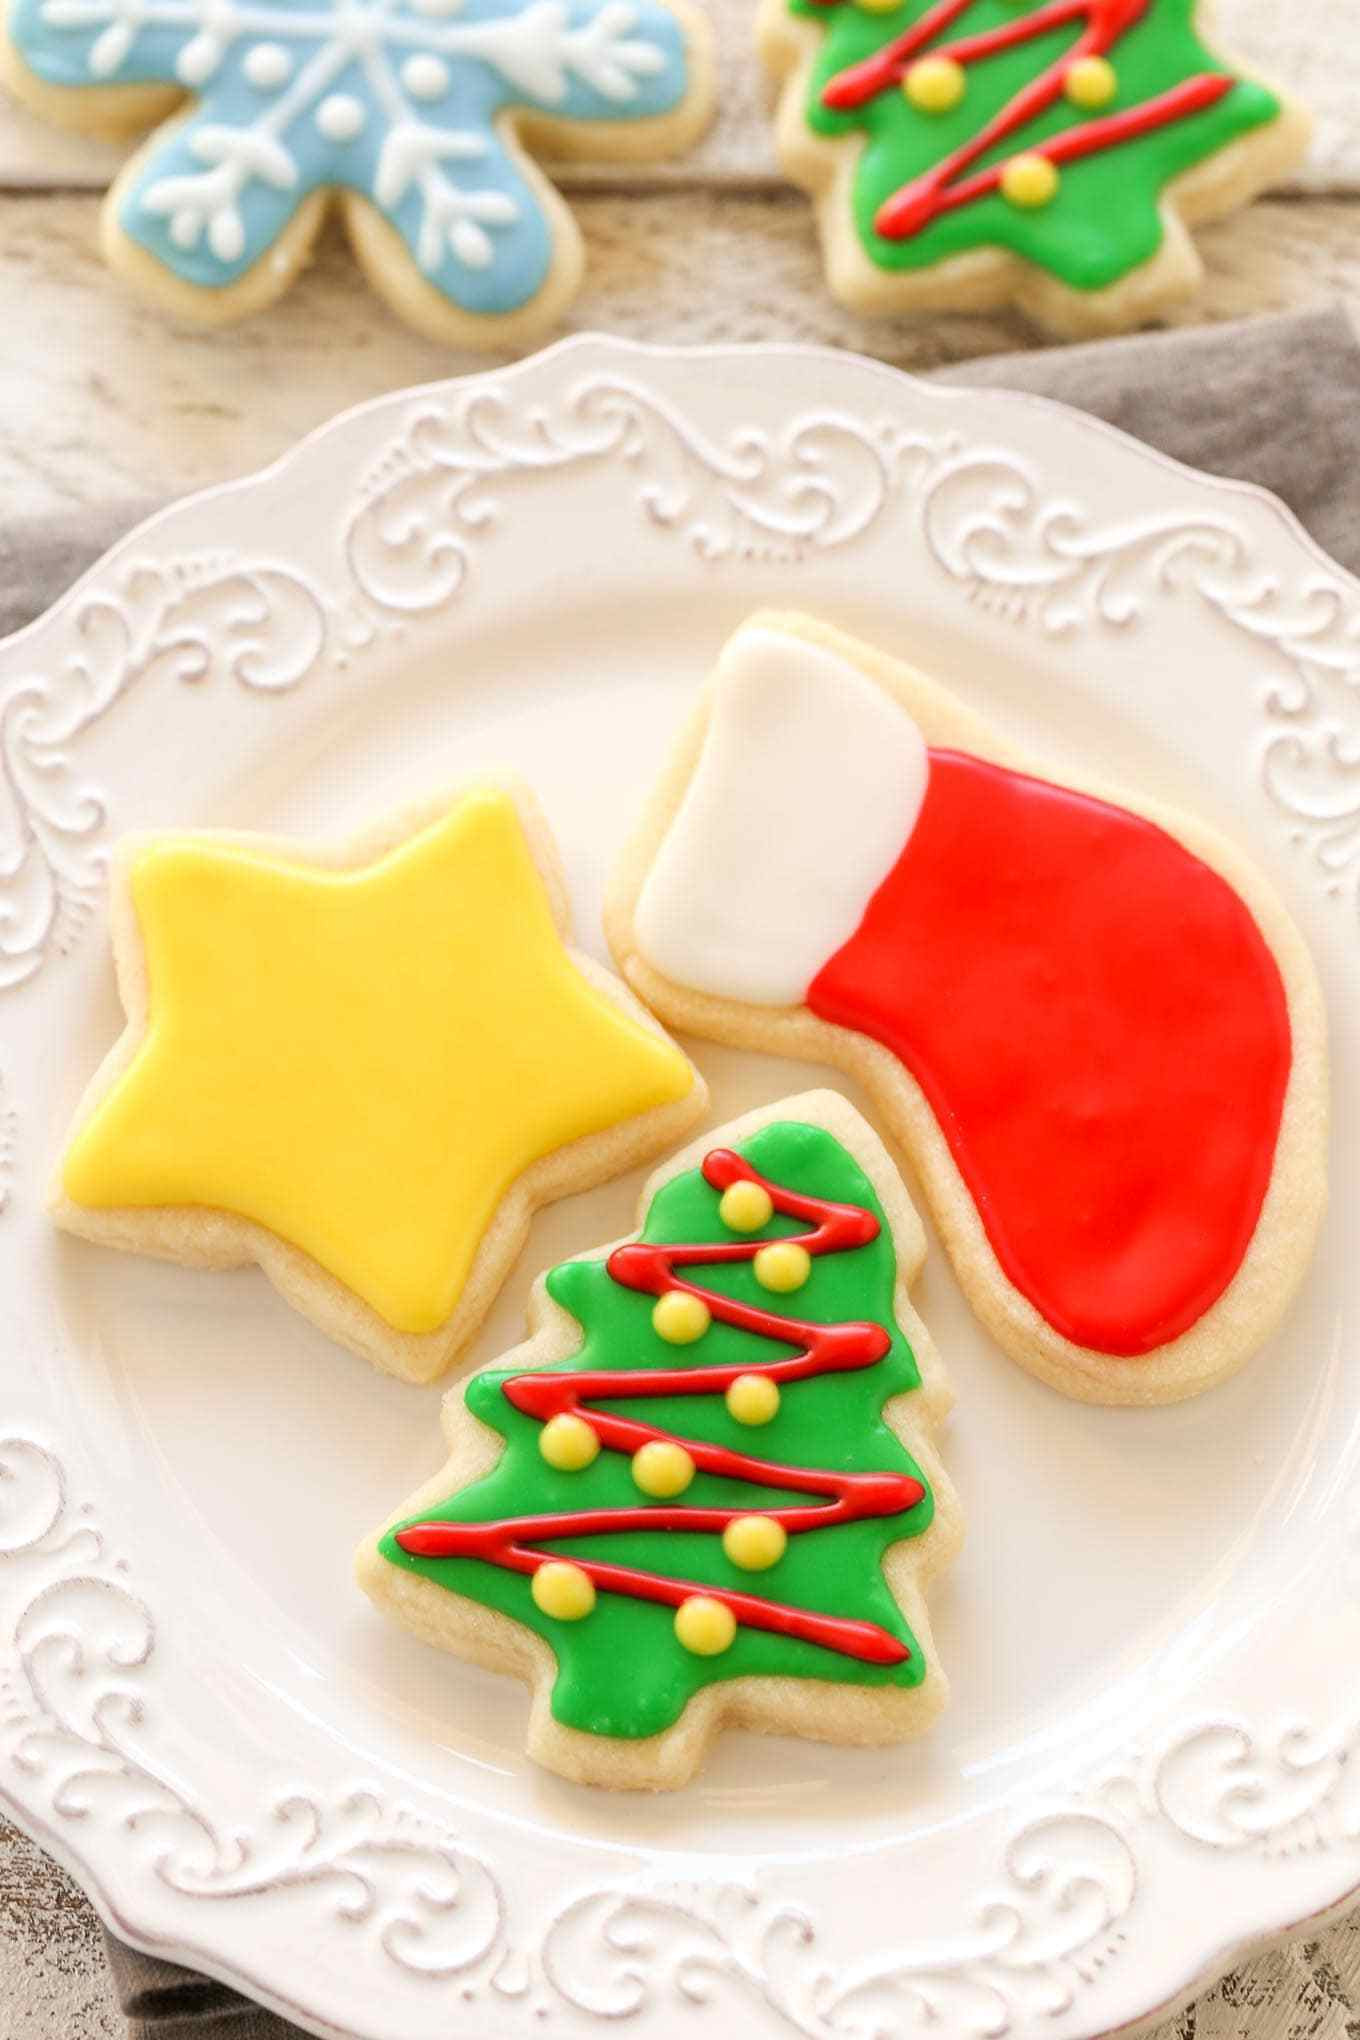 Christmas Sugar Cookies Recipes  Soft Christmas Cut Out Sugar Cookies Live Well Bake ten